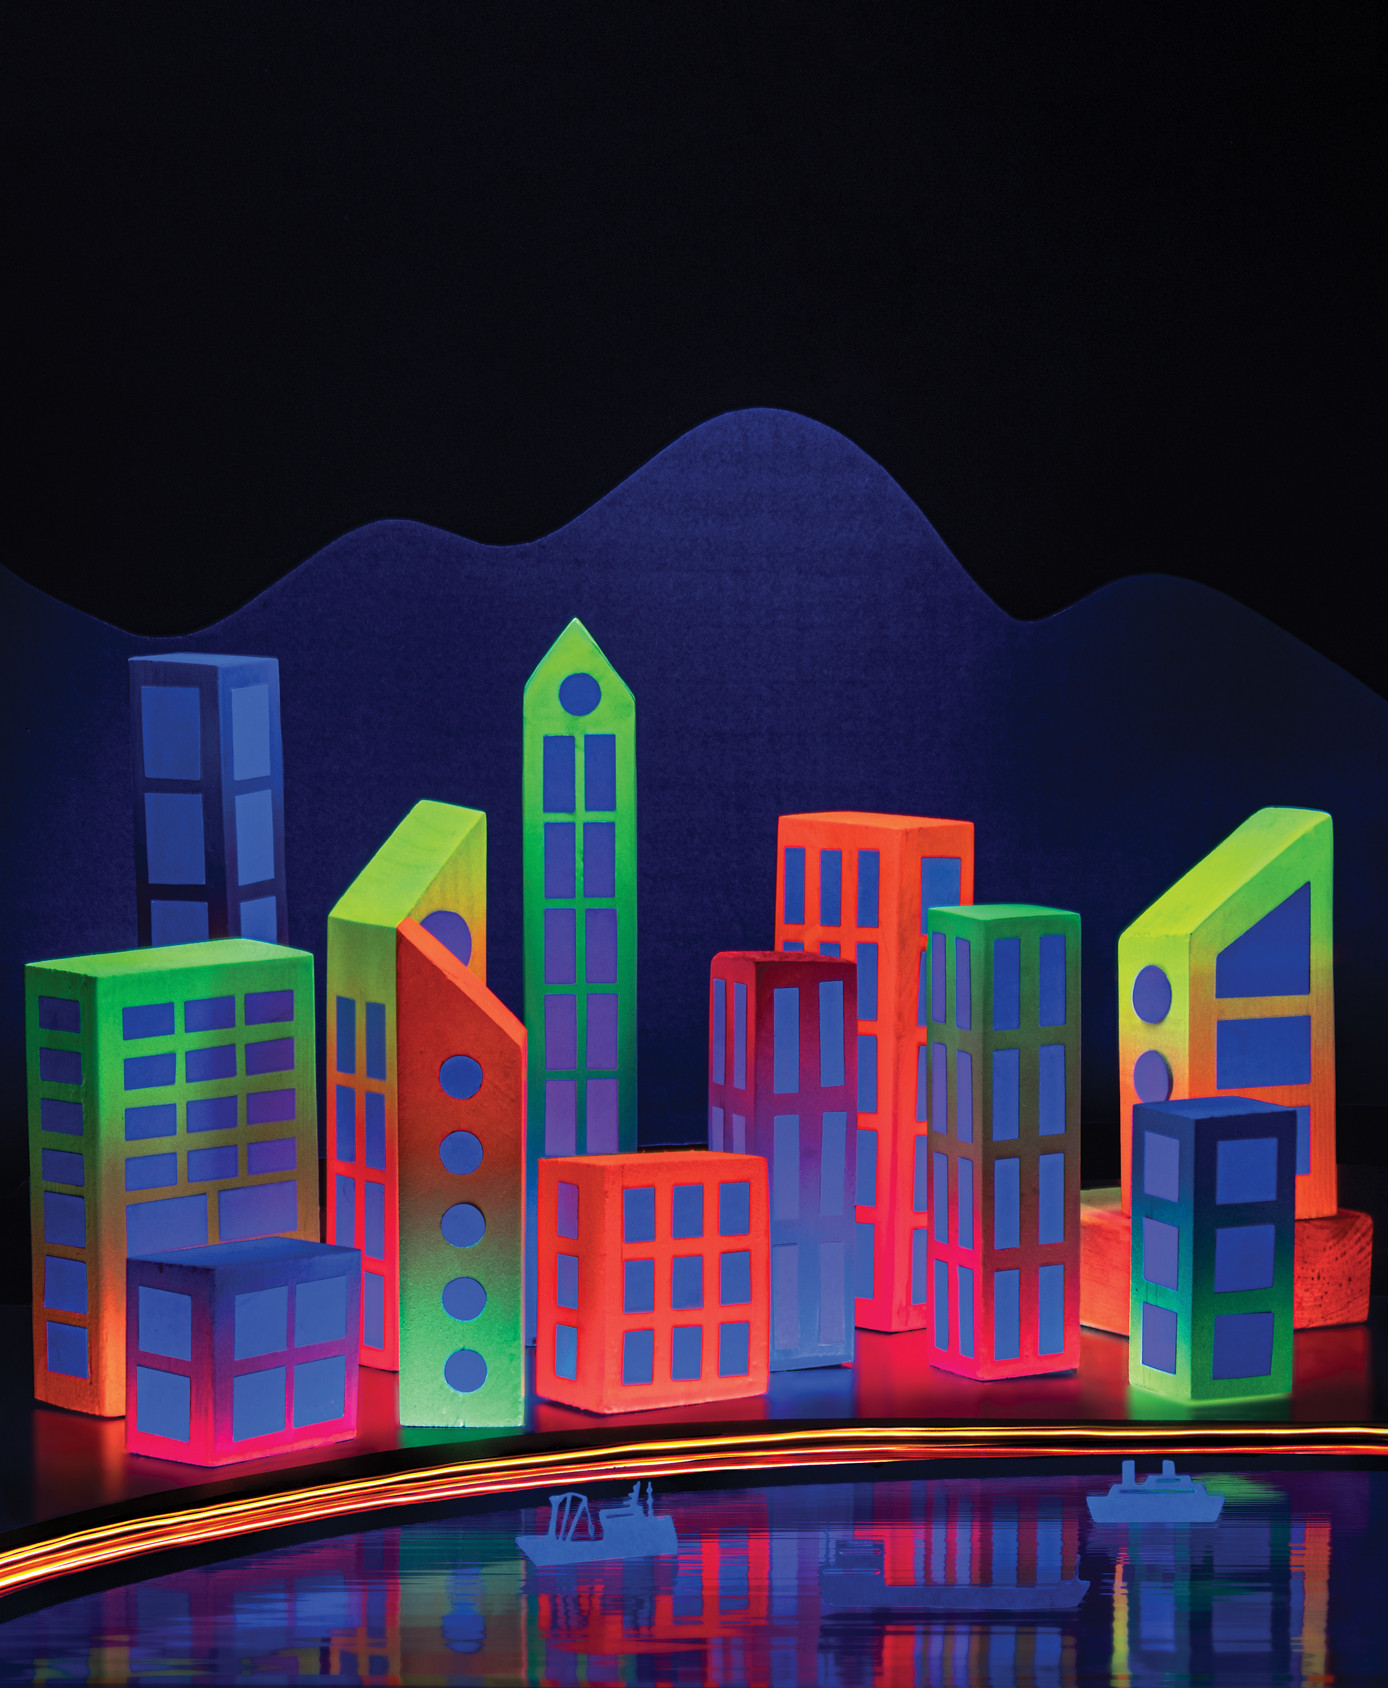 This is the neon city blockitecture we did as the intial idea for the cover.